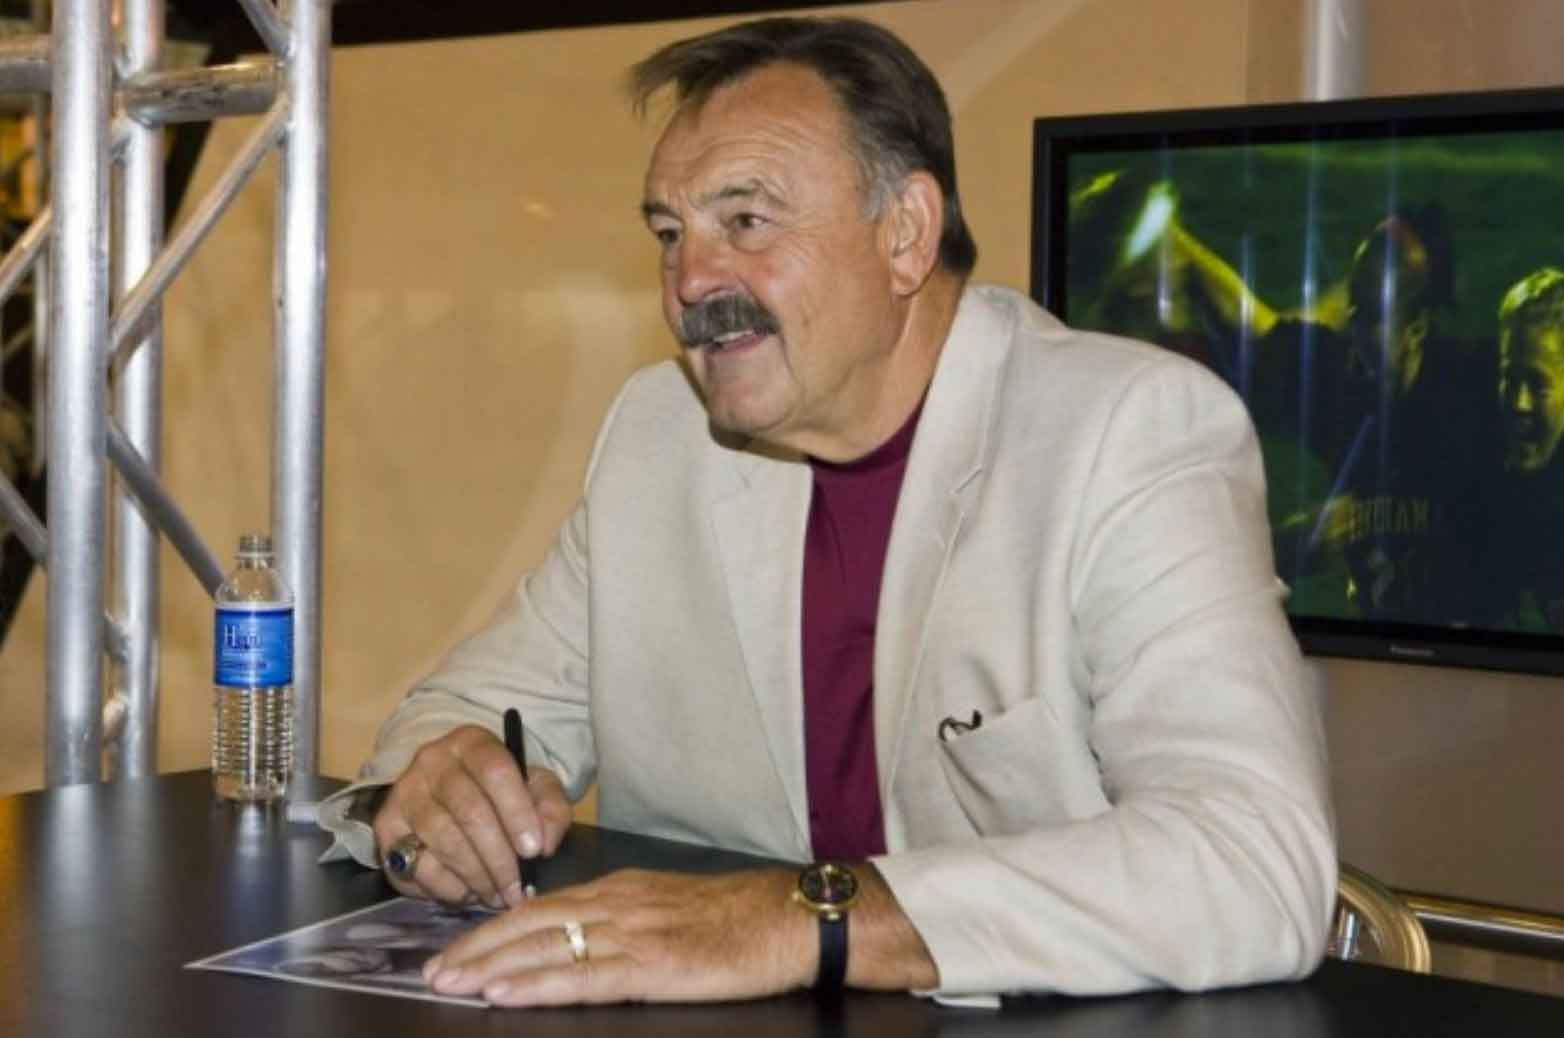 Dick Butkus, linebacker: giocatori football americano